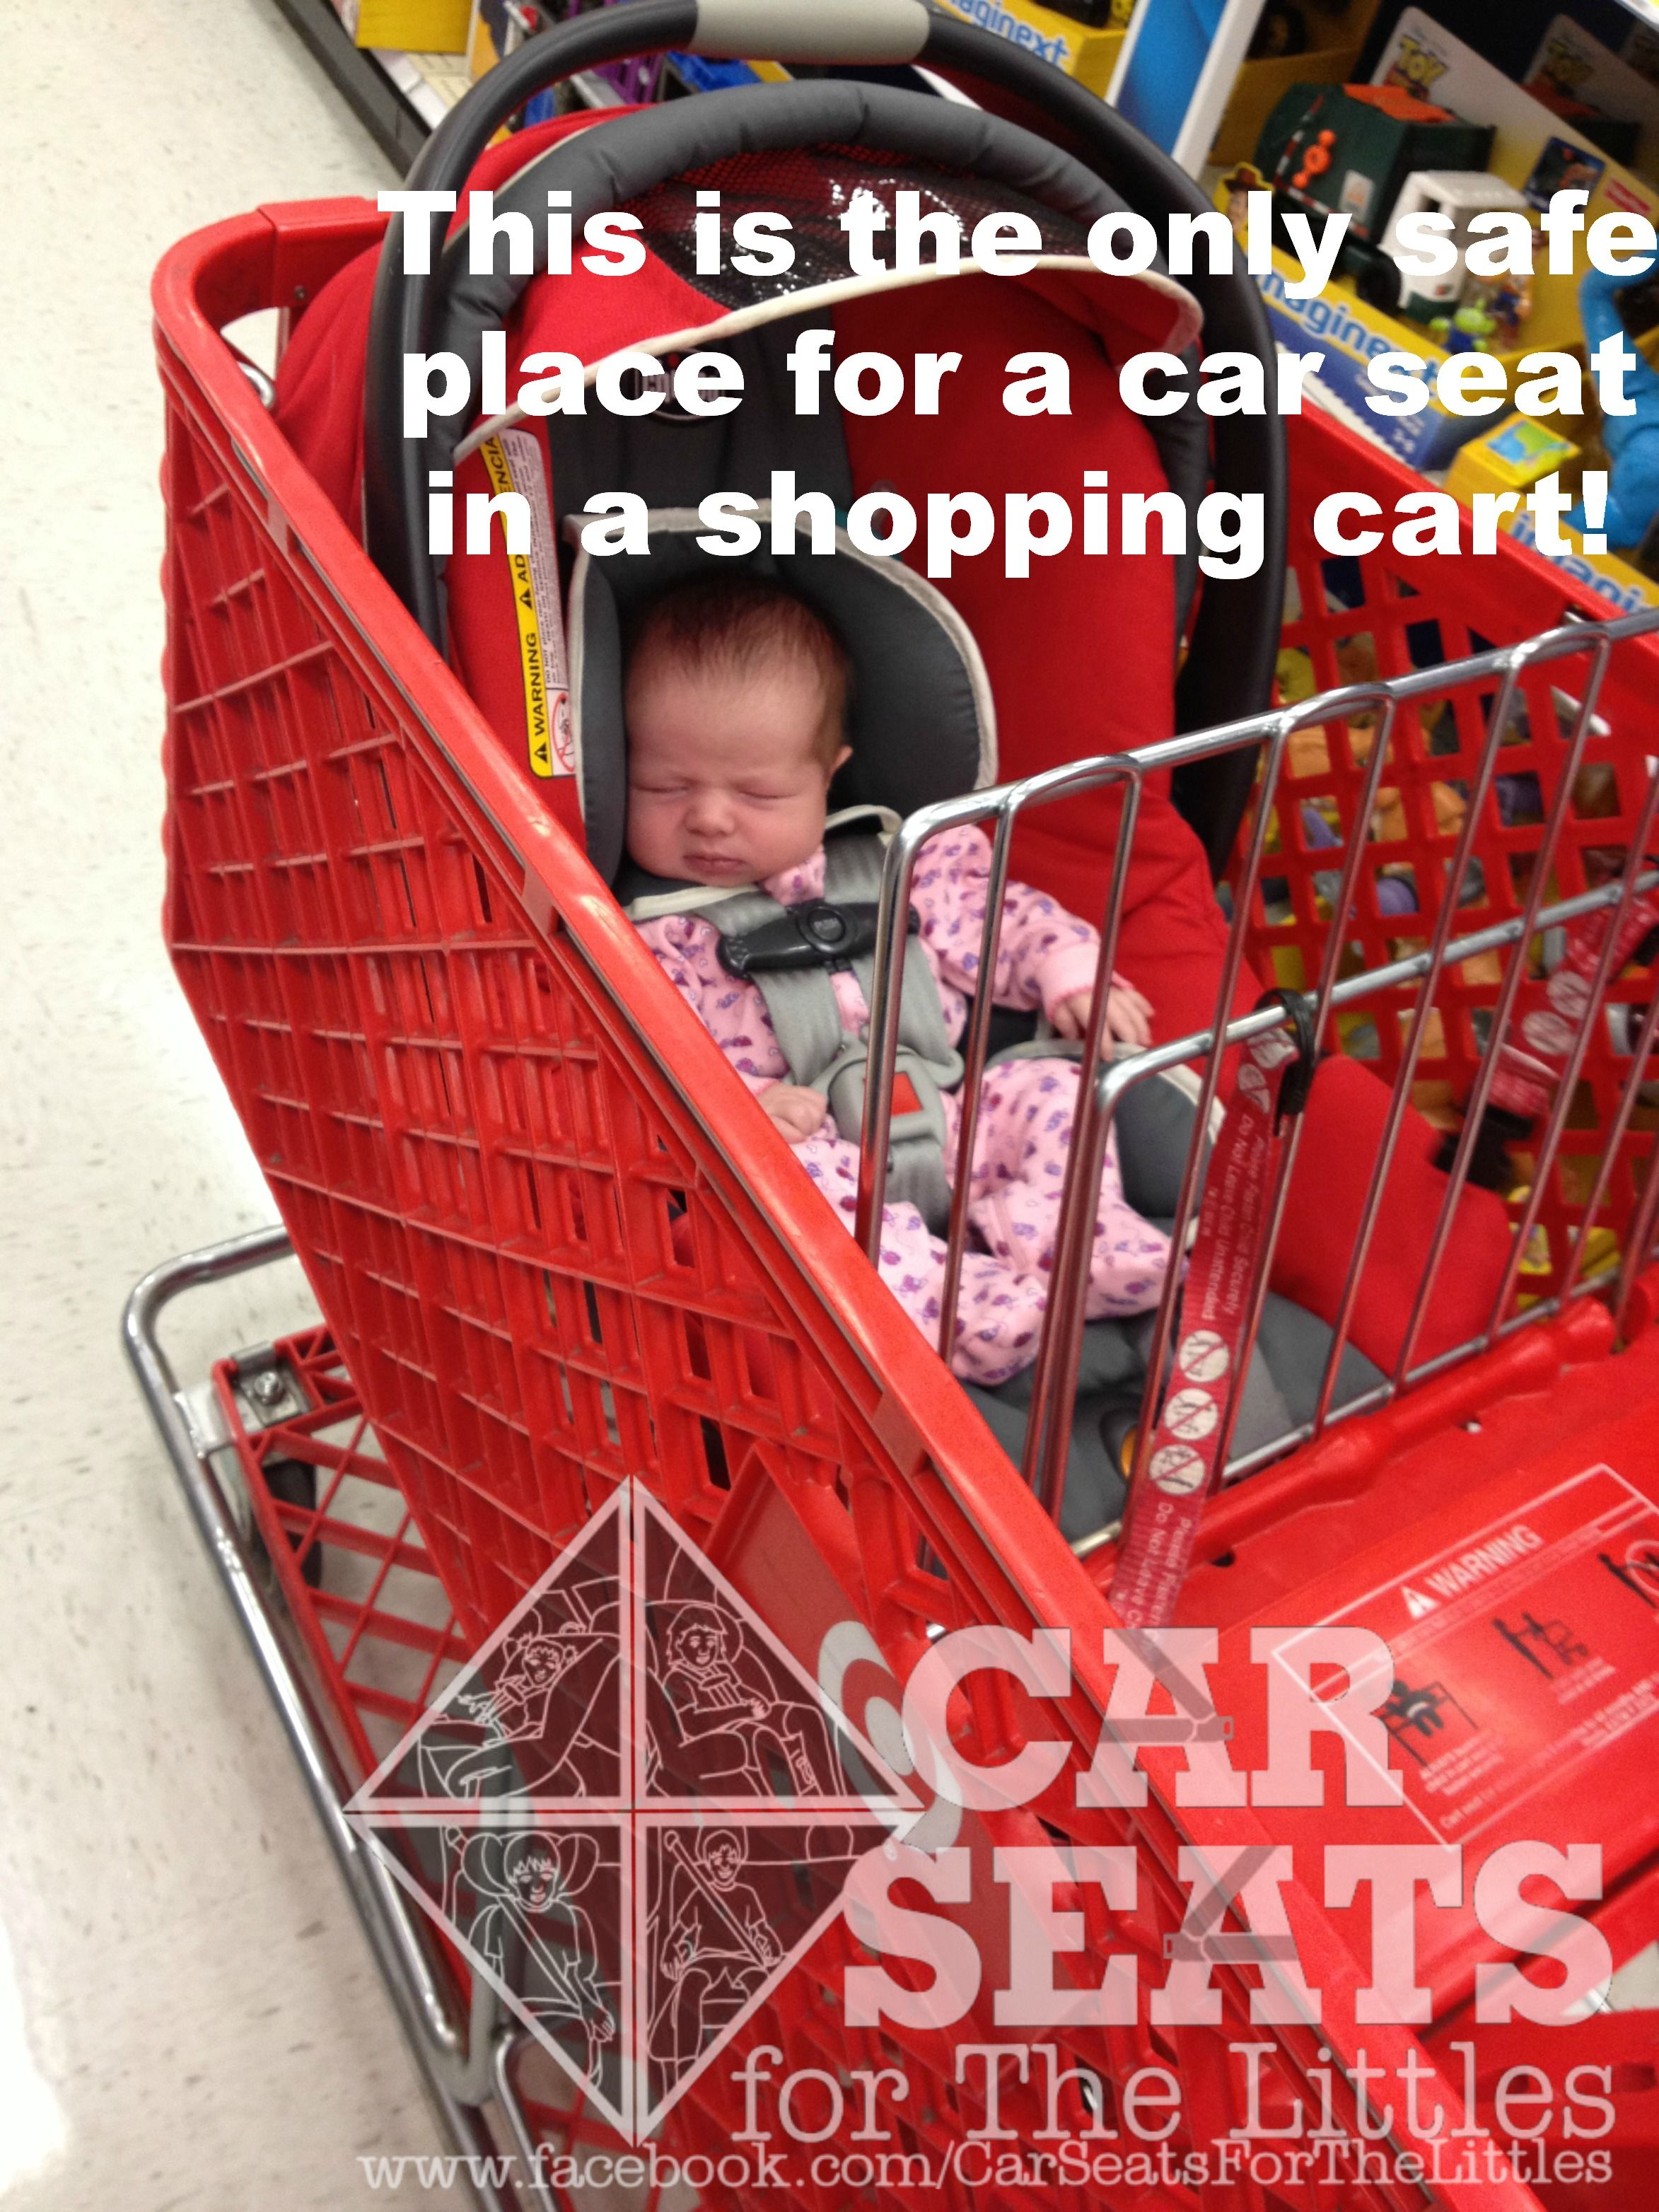 Please don't put your infant car seat on top of a shopping